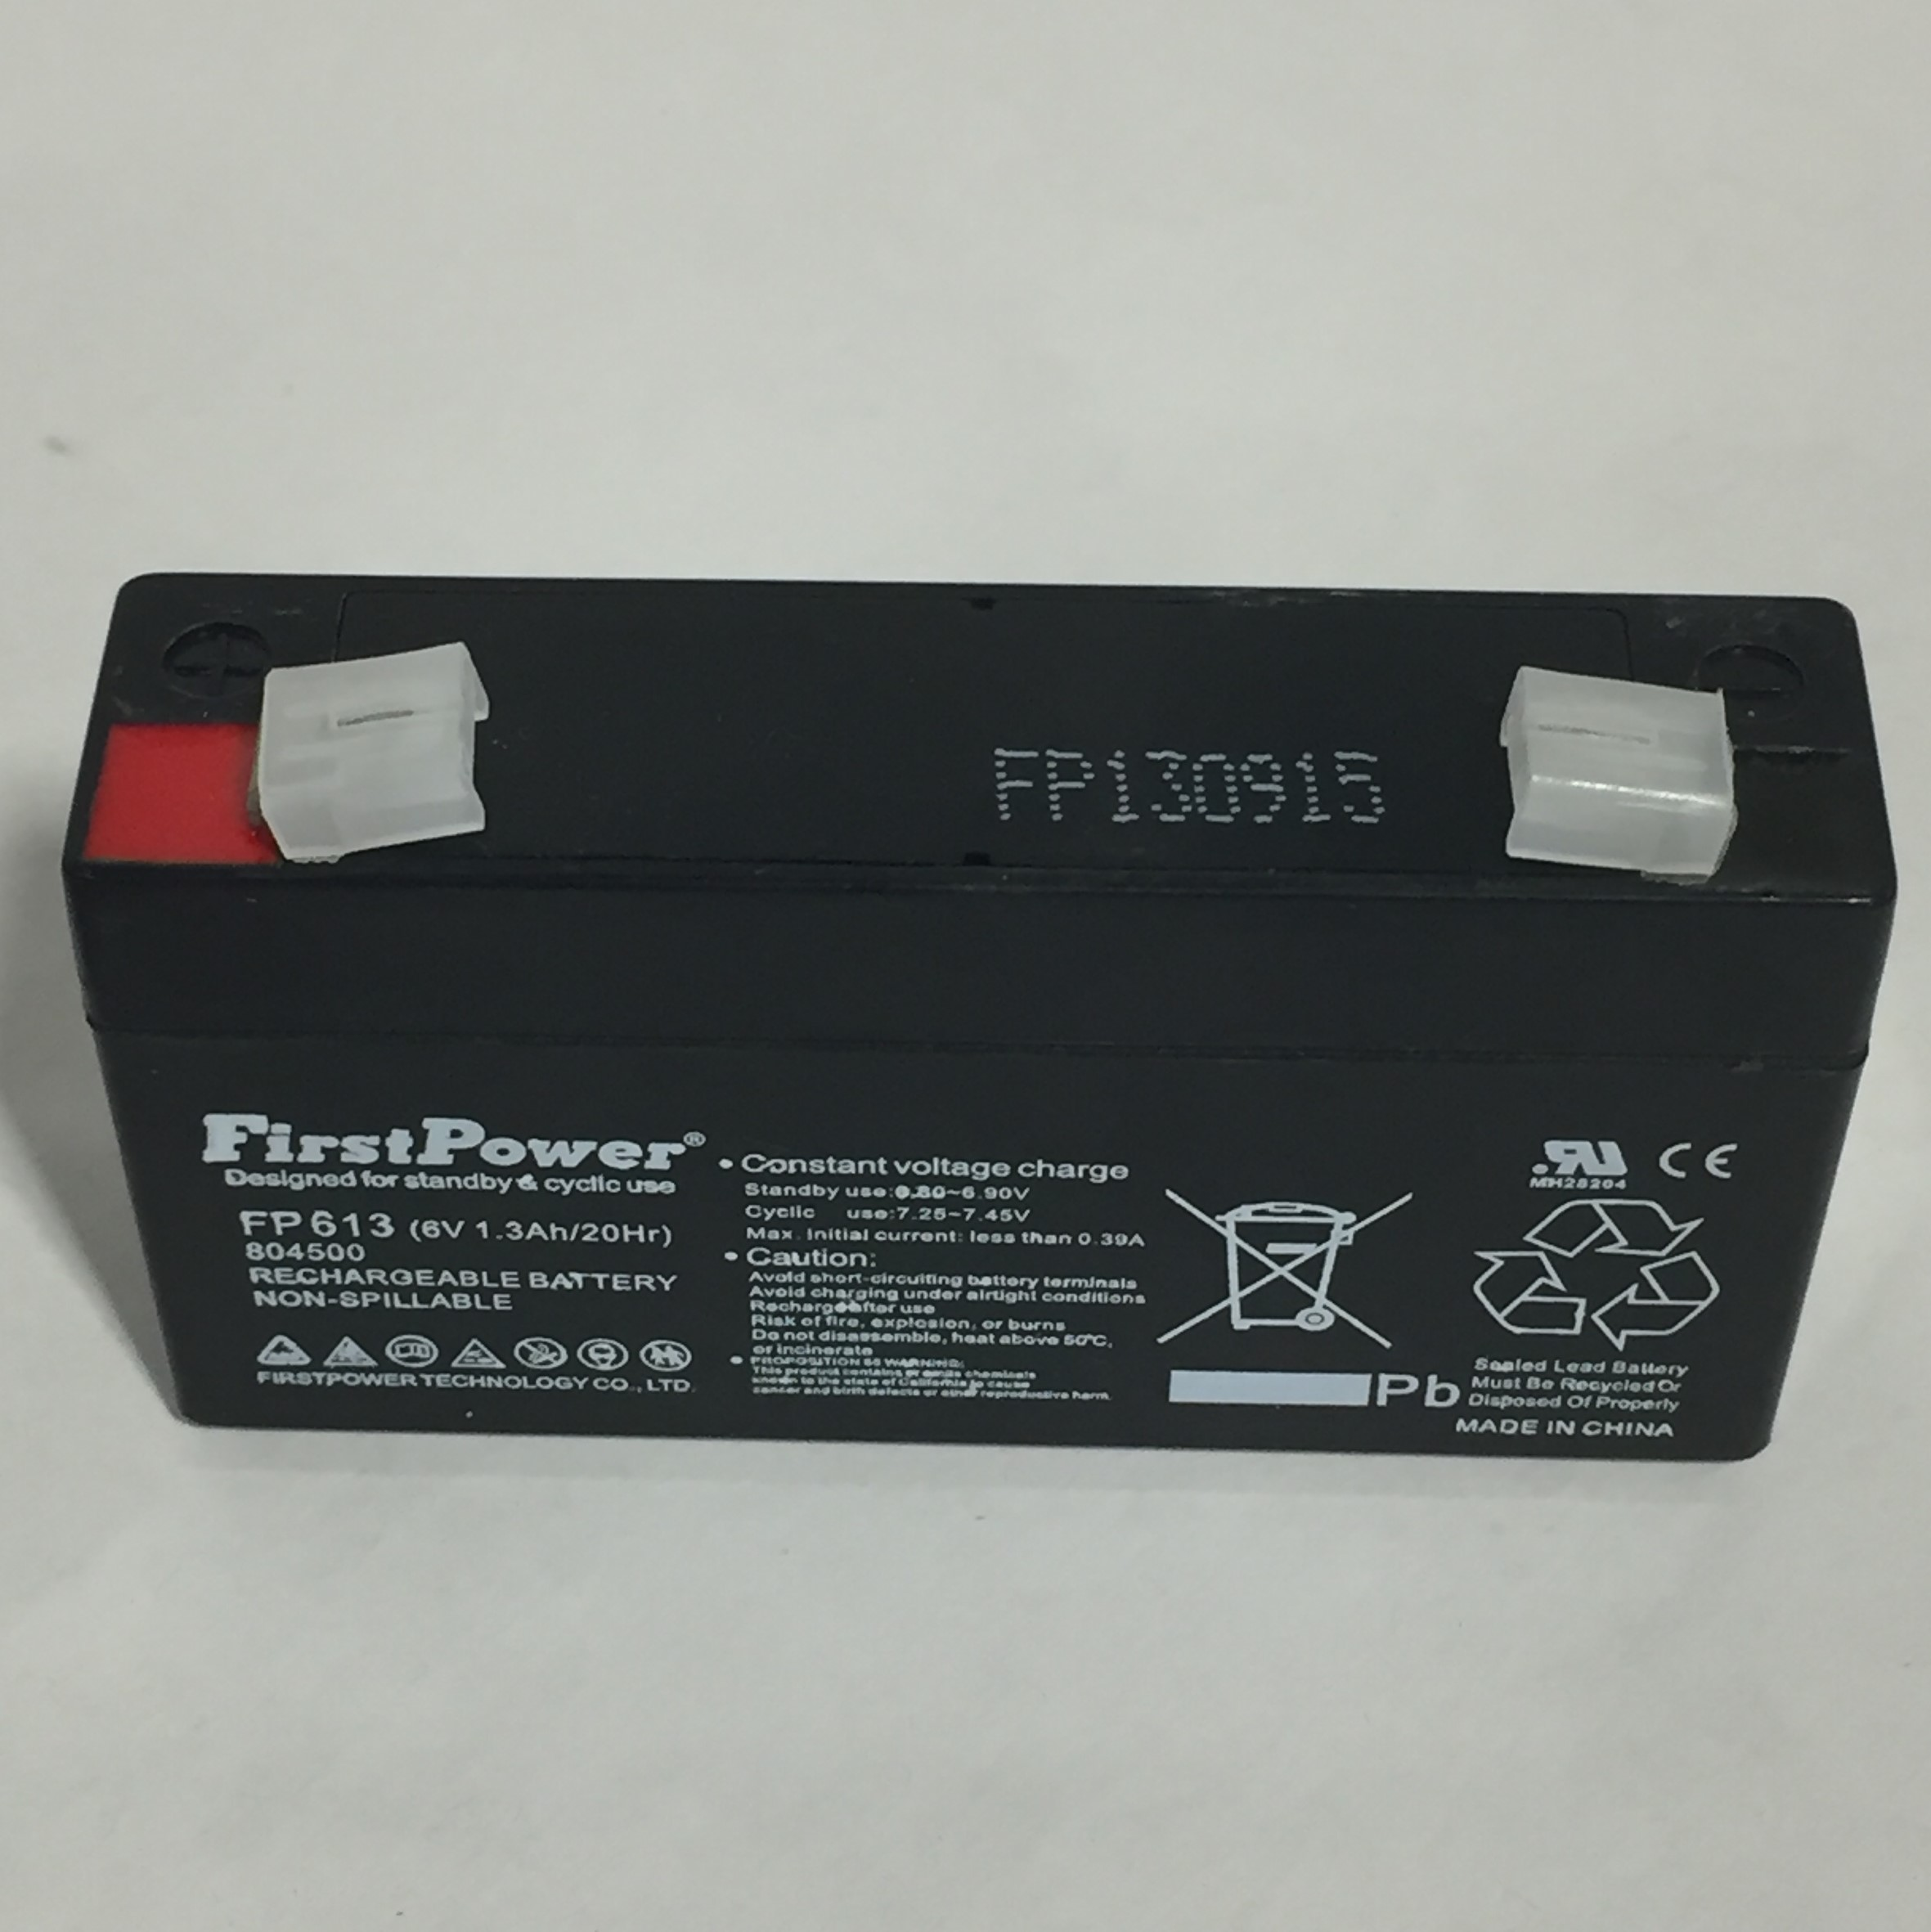 FirstPower 804500 | BATTERY 6 VLT1.3 AH SLD LD ACD